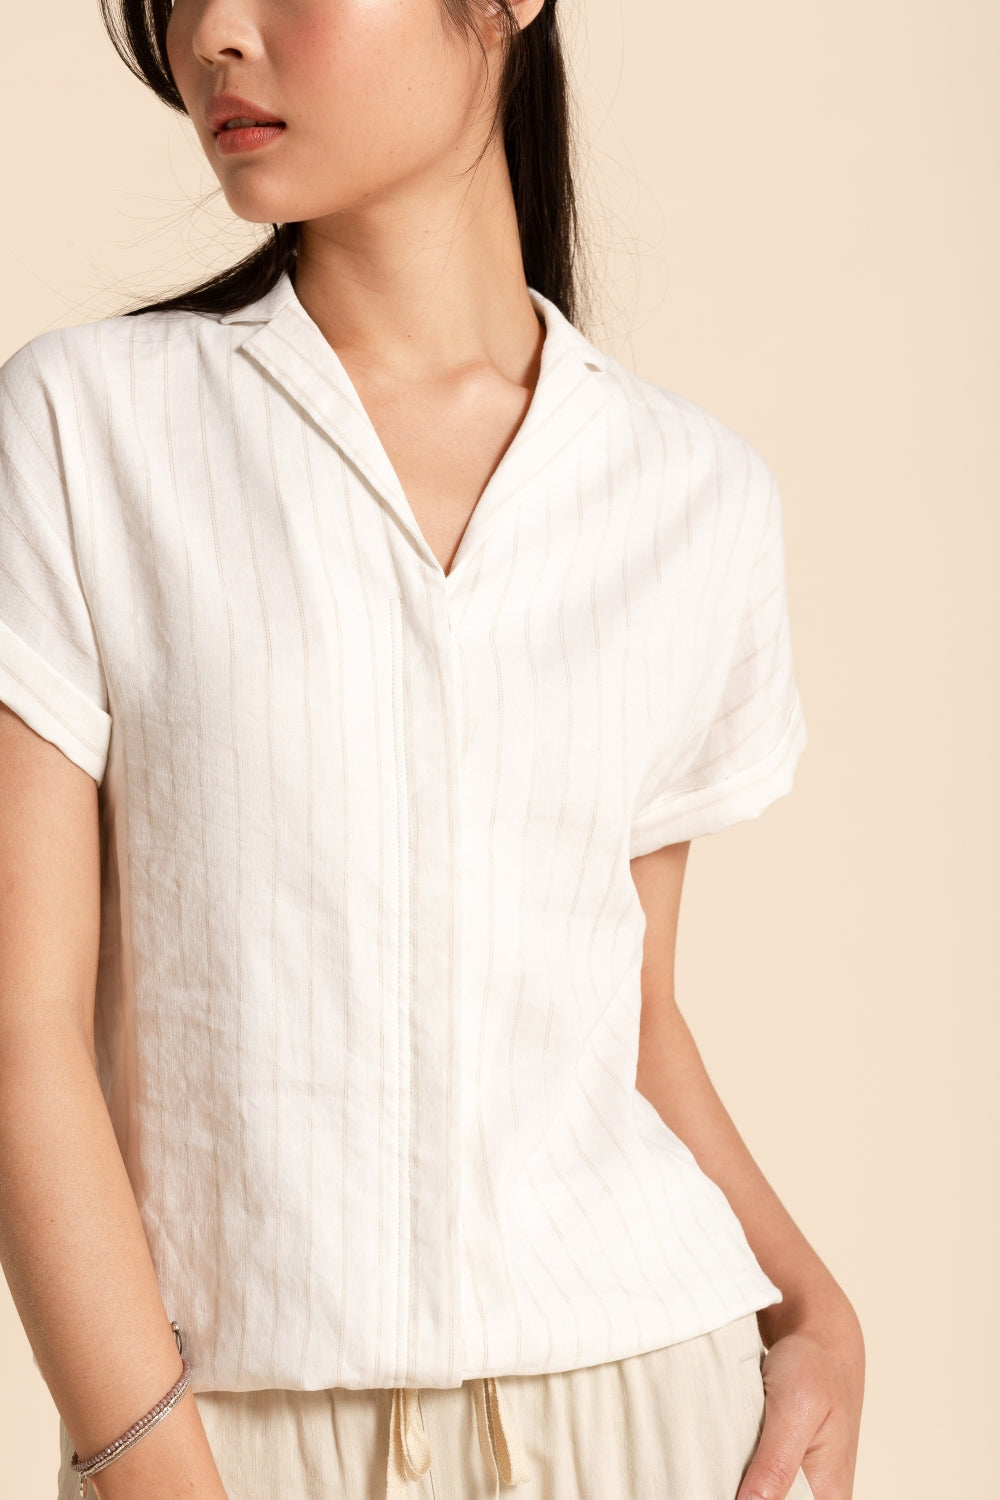 Blouson Shirt - White Striped